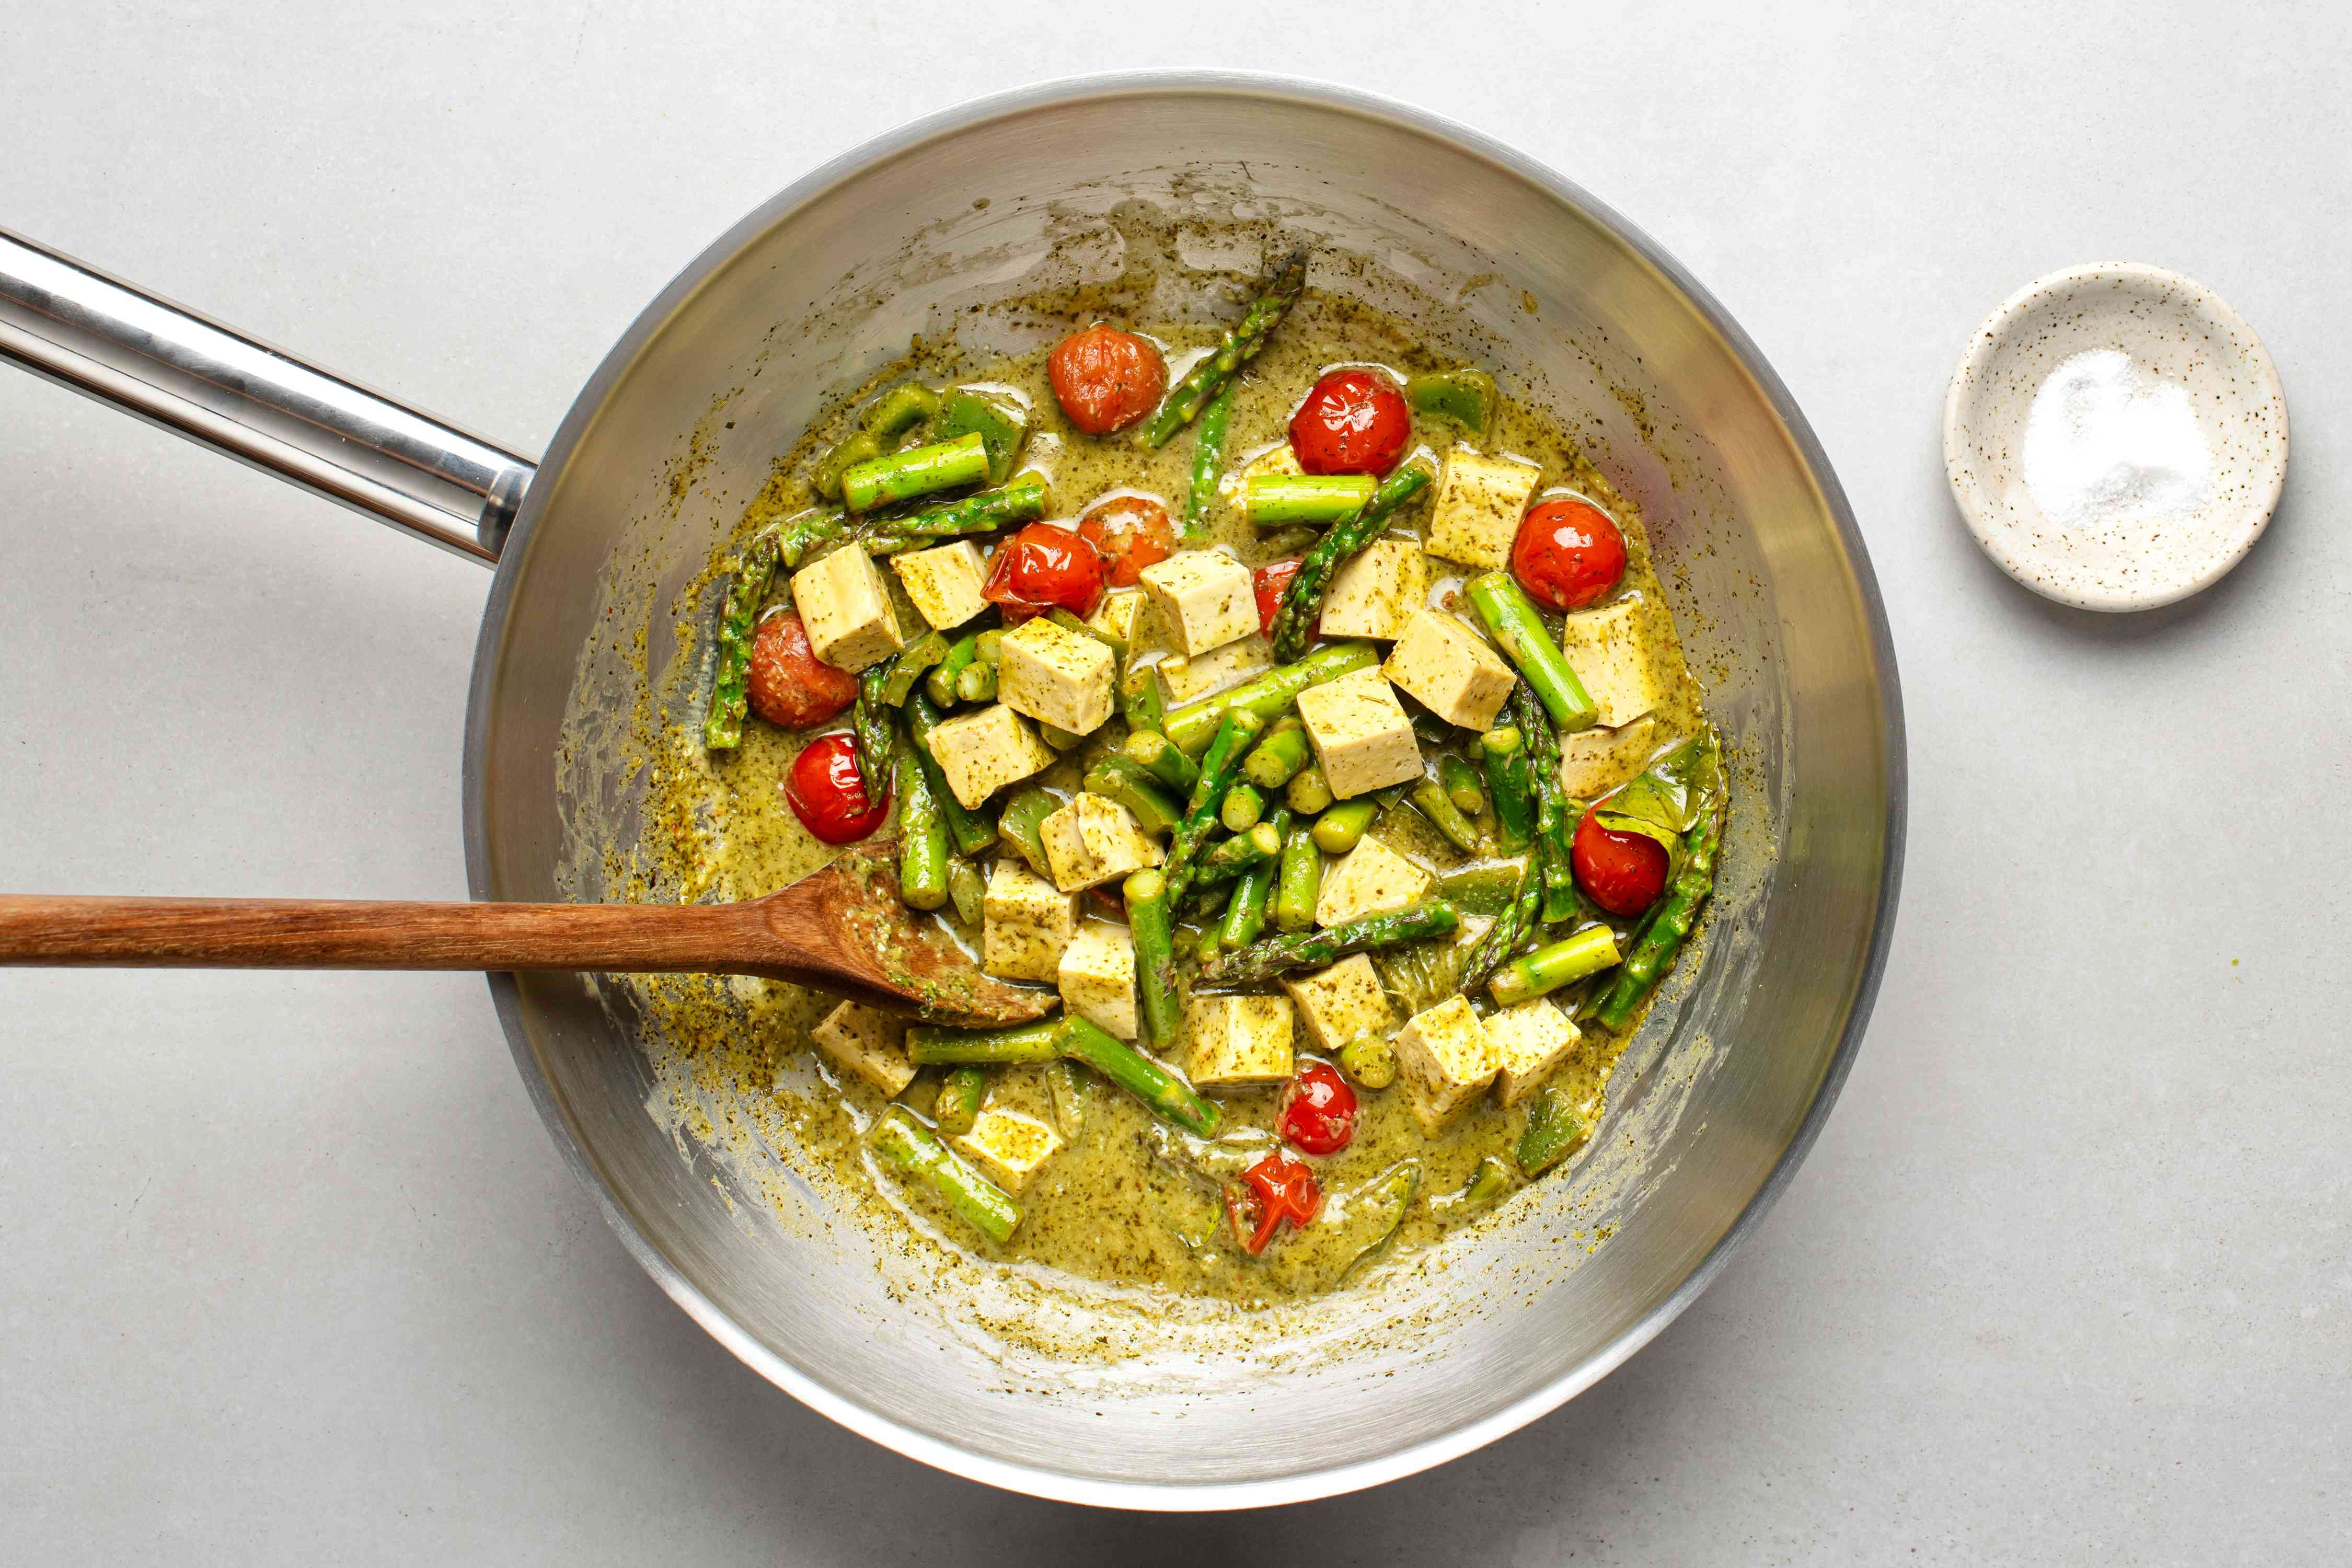 Green Thai curry removed from the heat